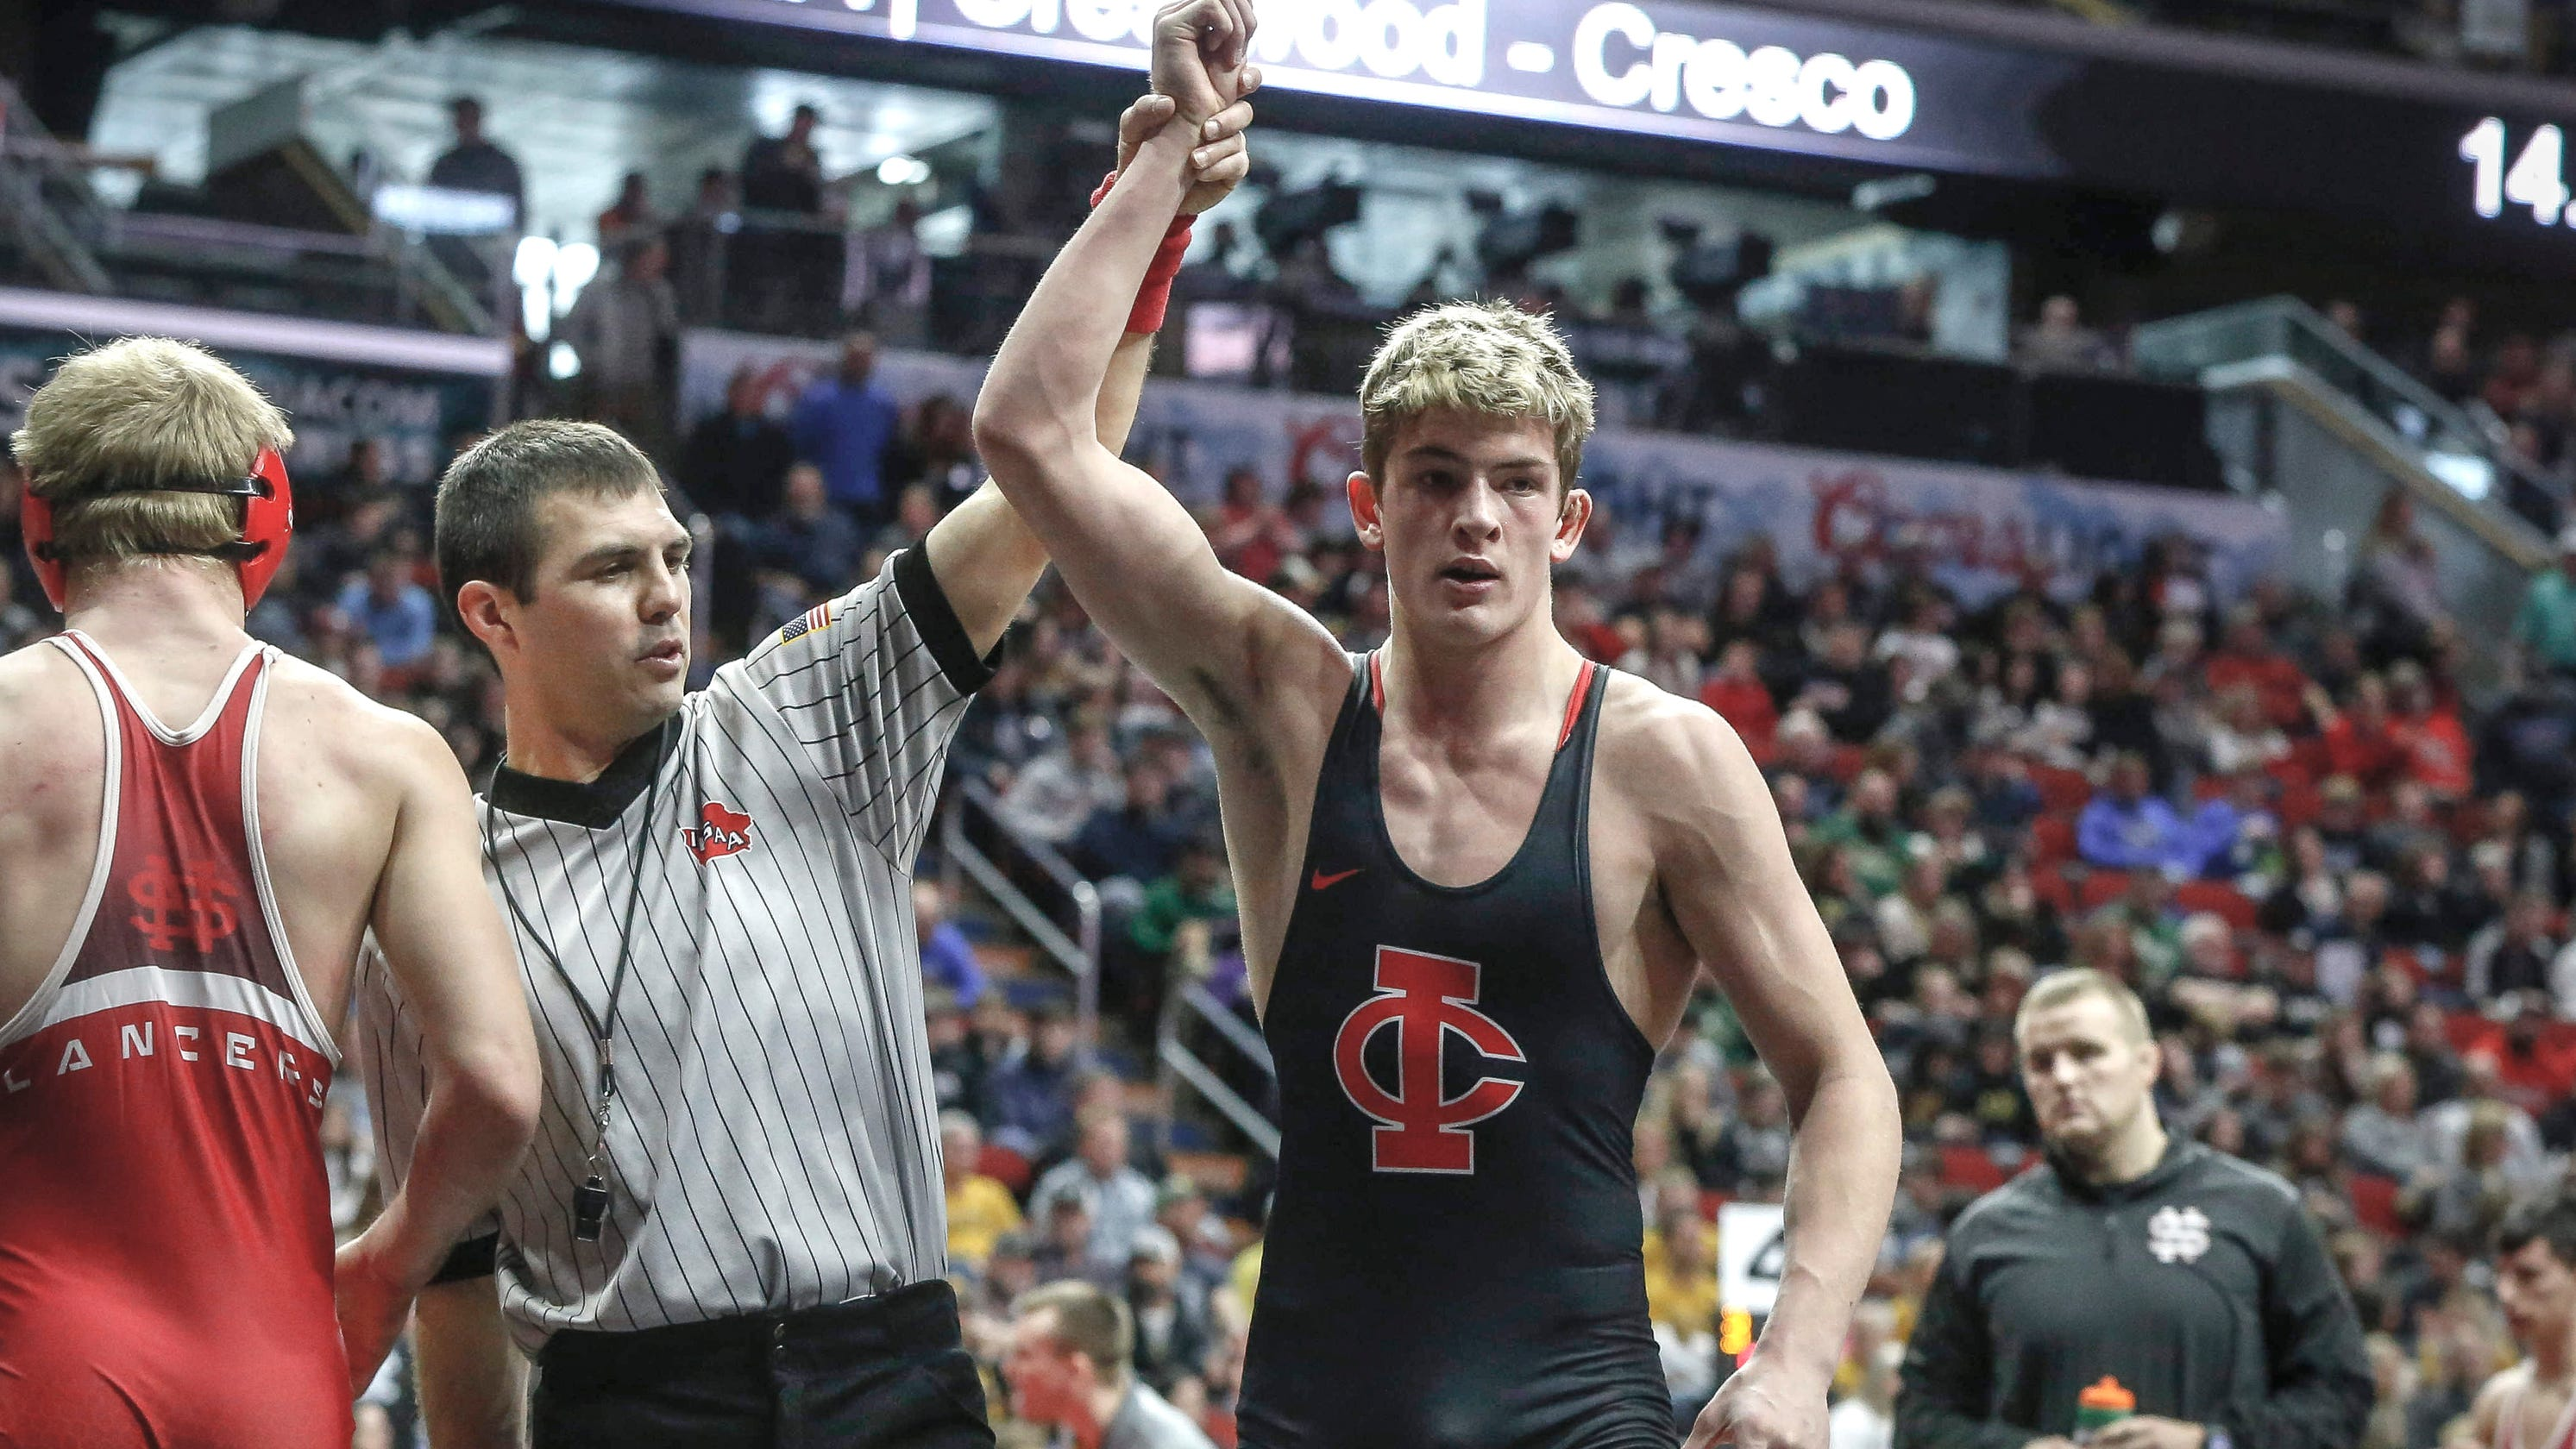 State wrestling: Here are the Class 3A, 2A and 1A state finals matchups